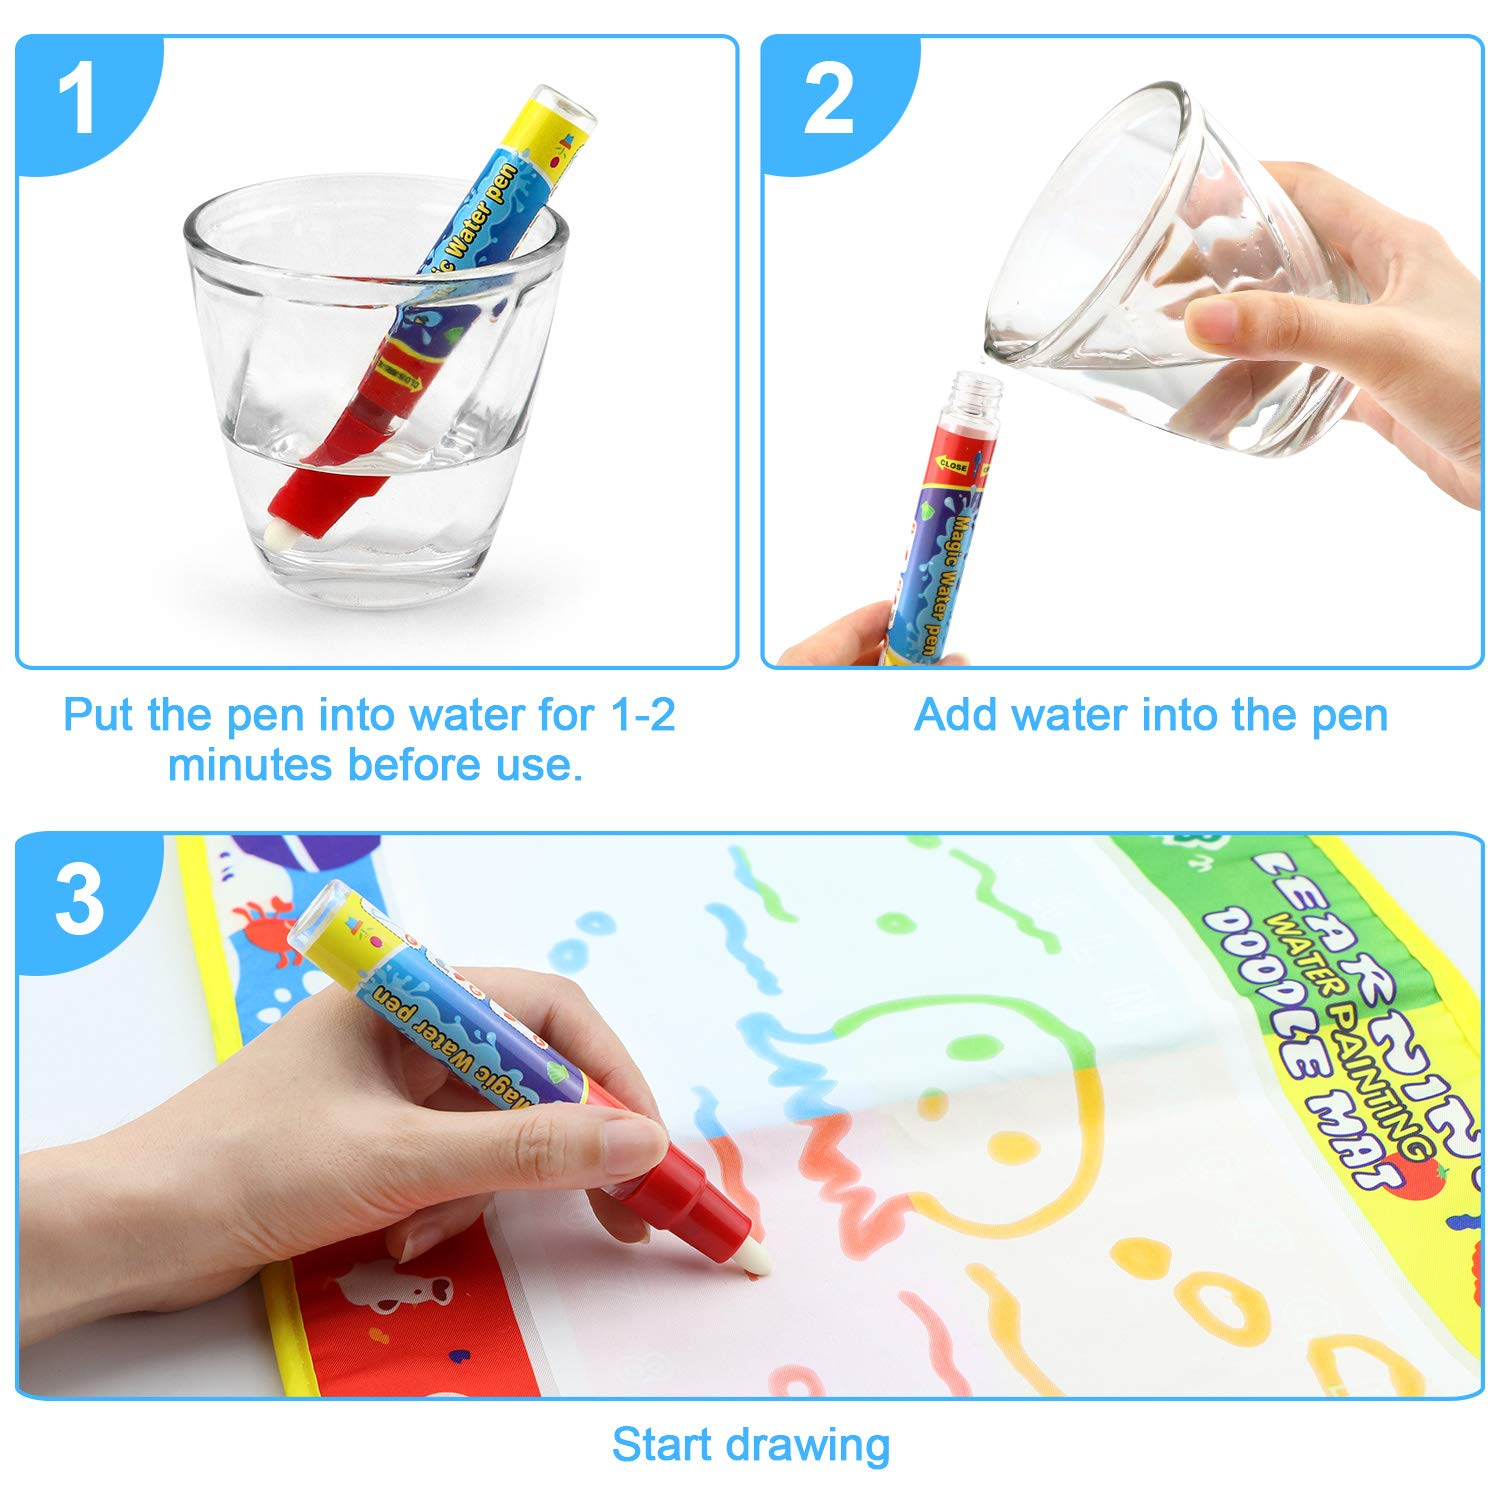 SENWOW Water Drawing Mat 46*30cm - Water Doodle Mat with Magic Pen - Drawing Painting Toy, Perfect Educational Toys for Children Over 3 Years